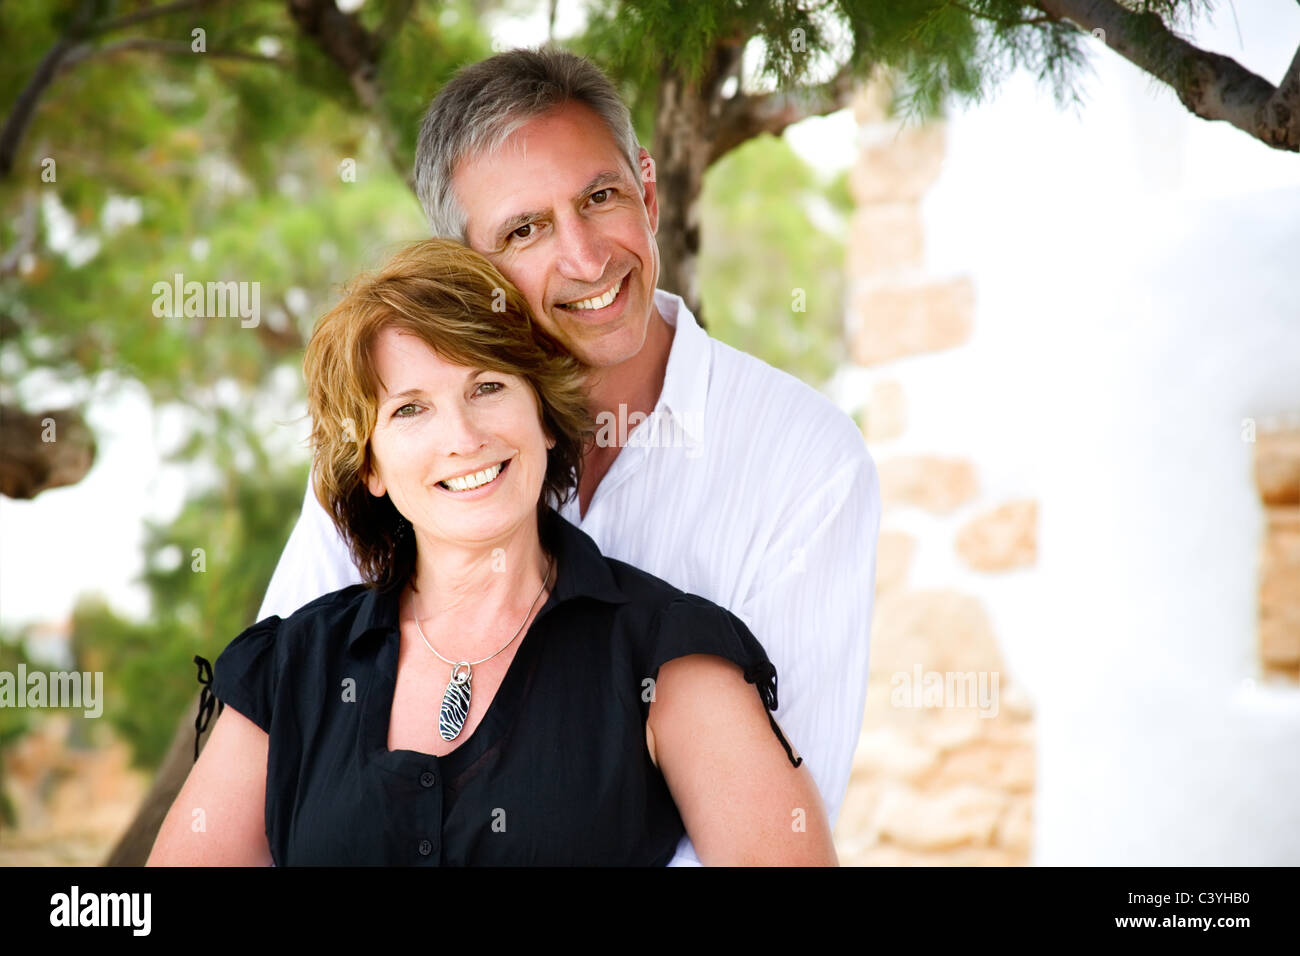 Couple Mature mature couple smiling and having fun stock photo: 36871044 - alamy